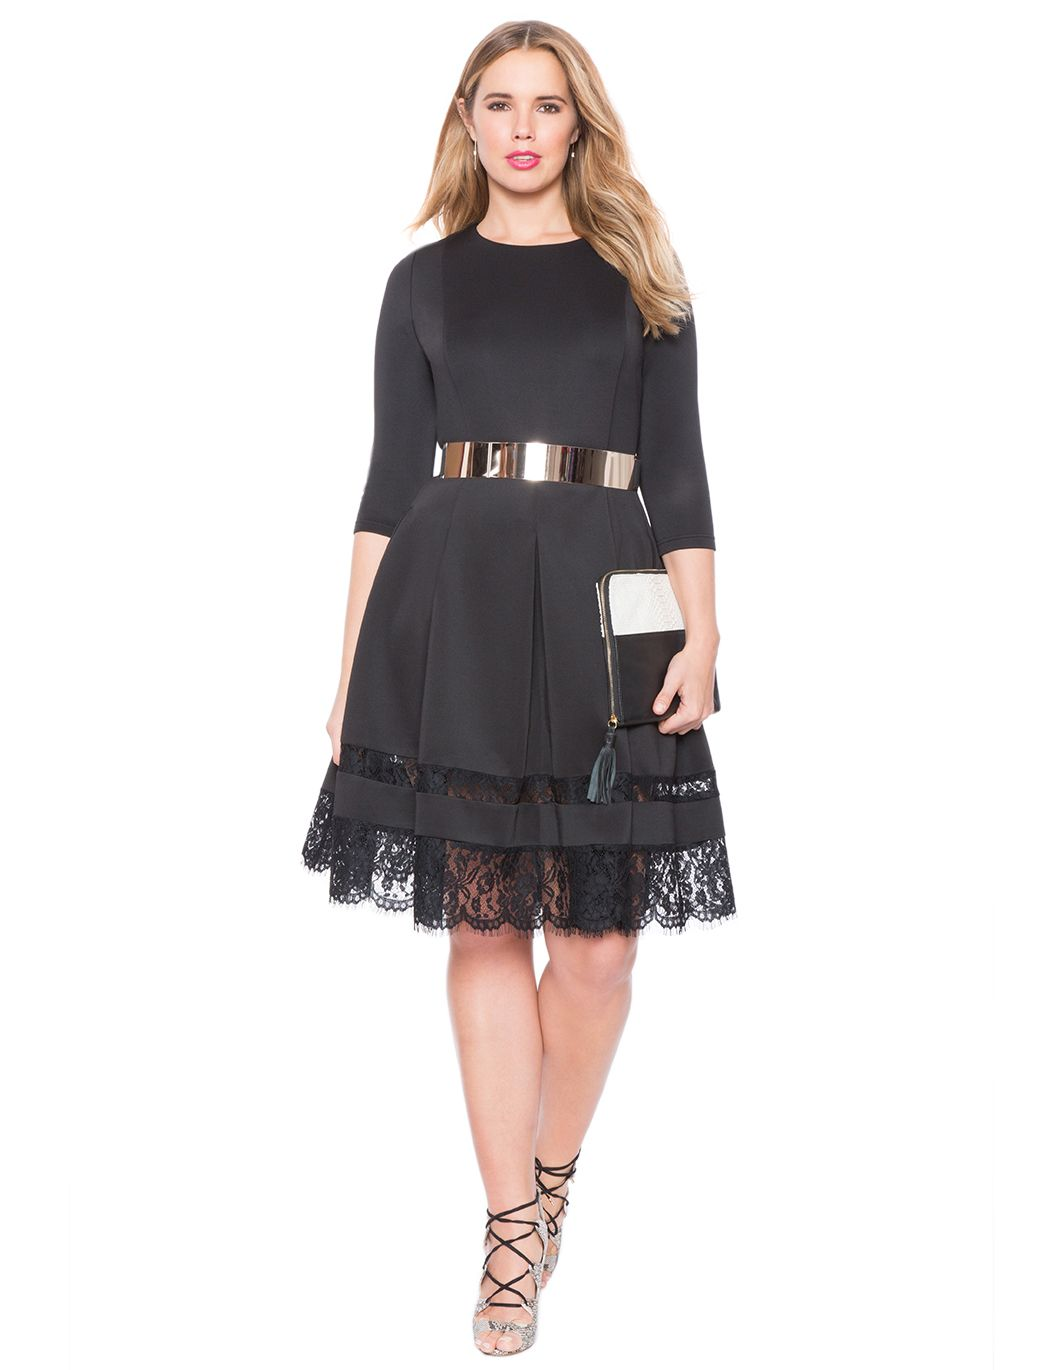 3aba5e88b349 Lace Insert Fit and Flare Dress | Women's Plus Size Tops | ELOQUII ...